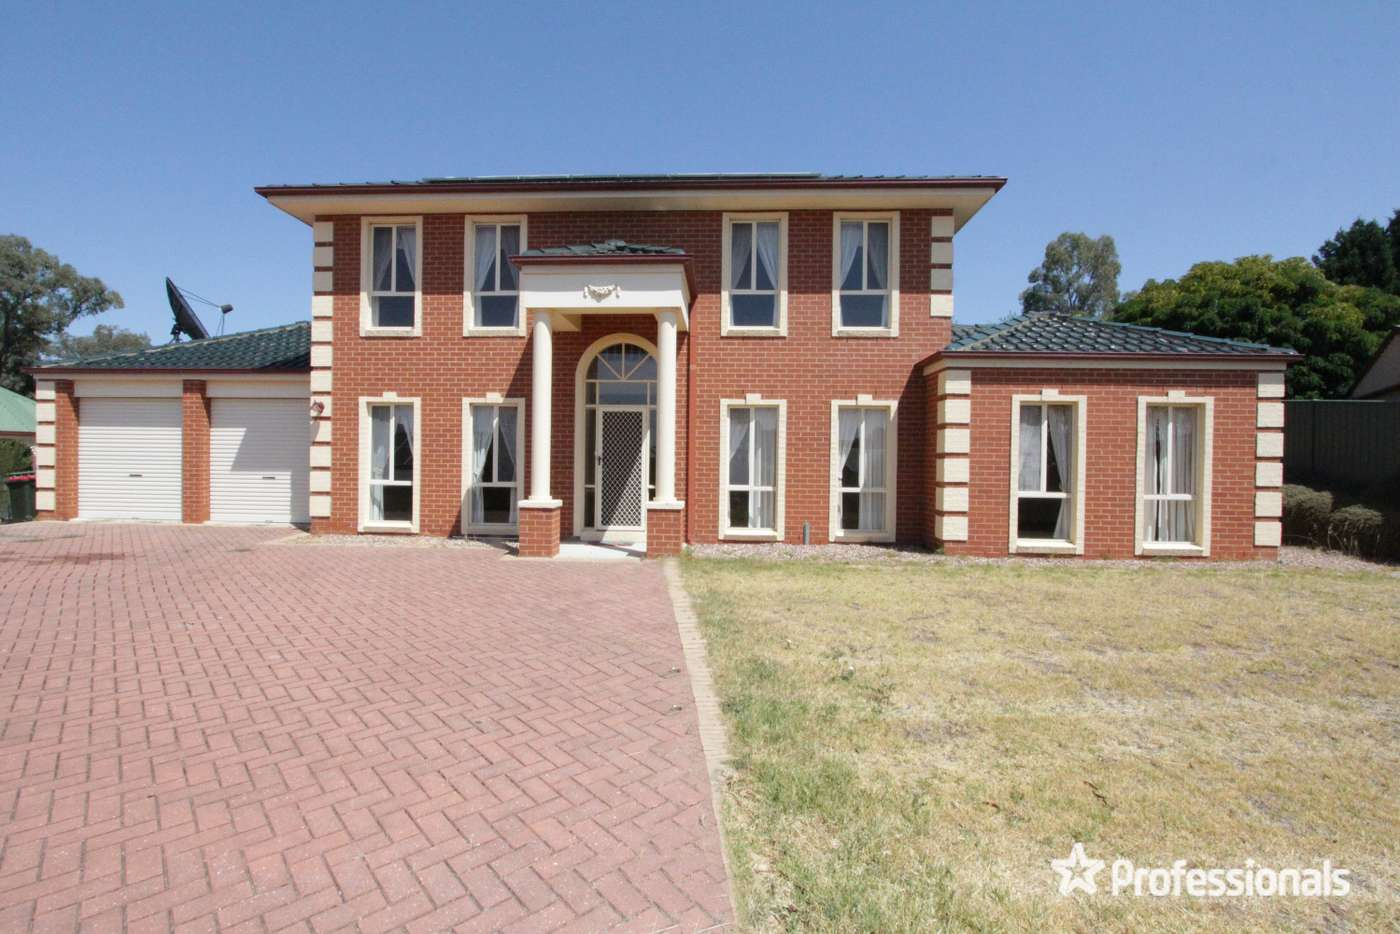 Main view of Homely house listing, 12 Ironbark Court, Kennington VIC 3550